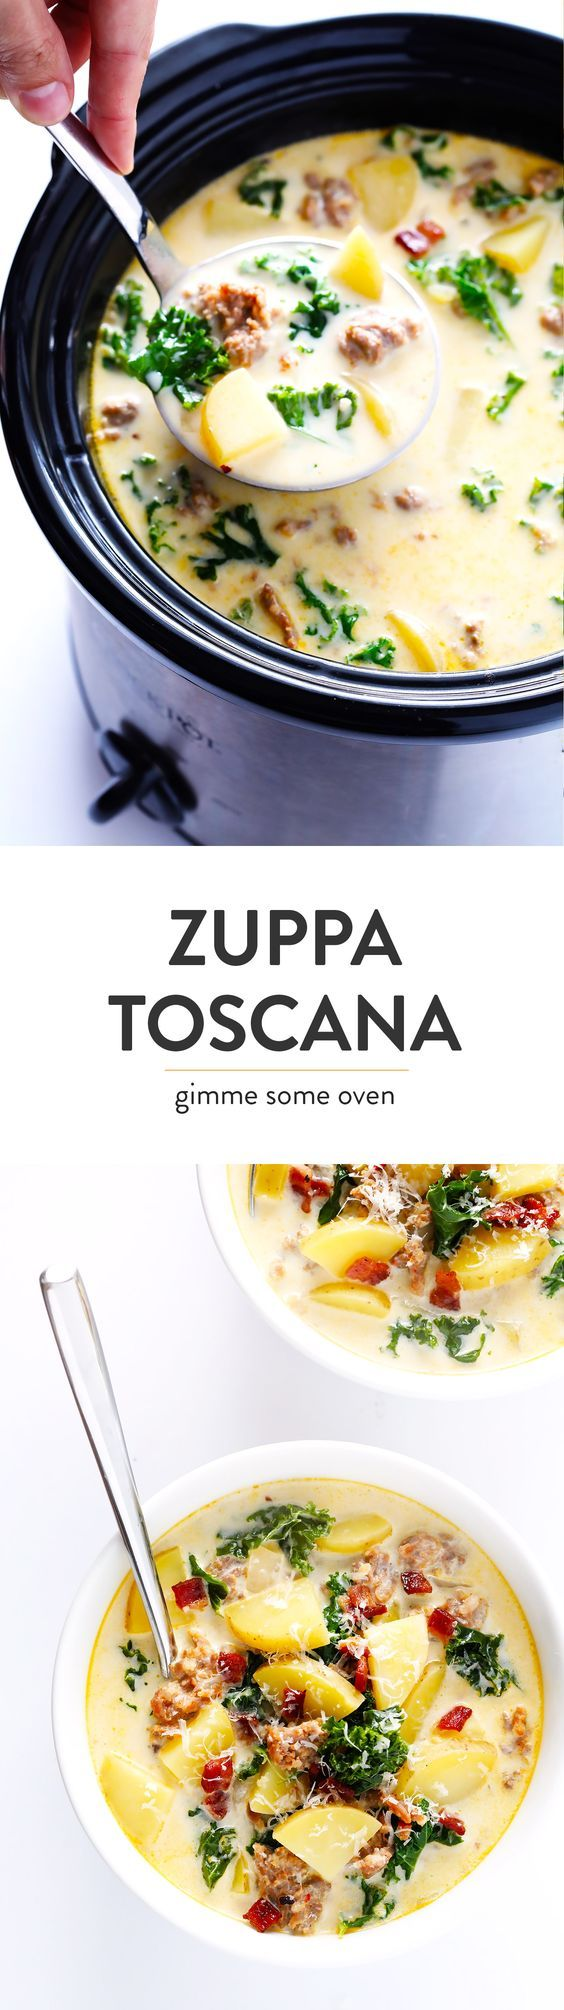 Zuppa Toscana (Olive Garden Copycat) Recipe (With images